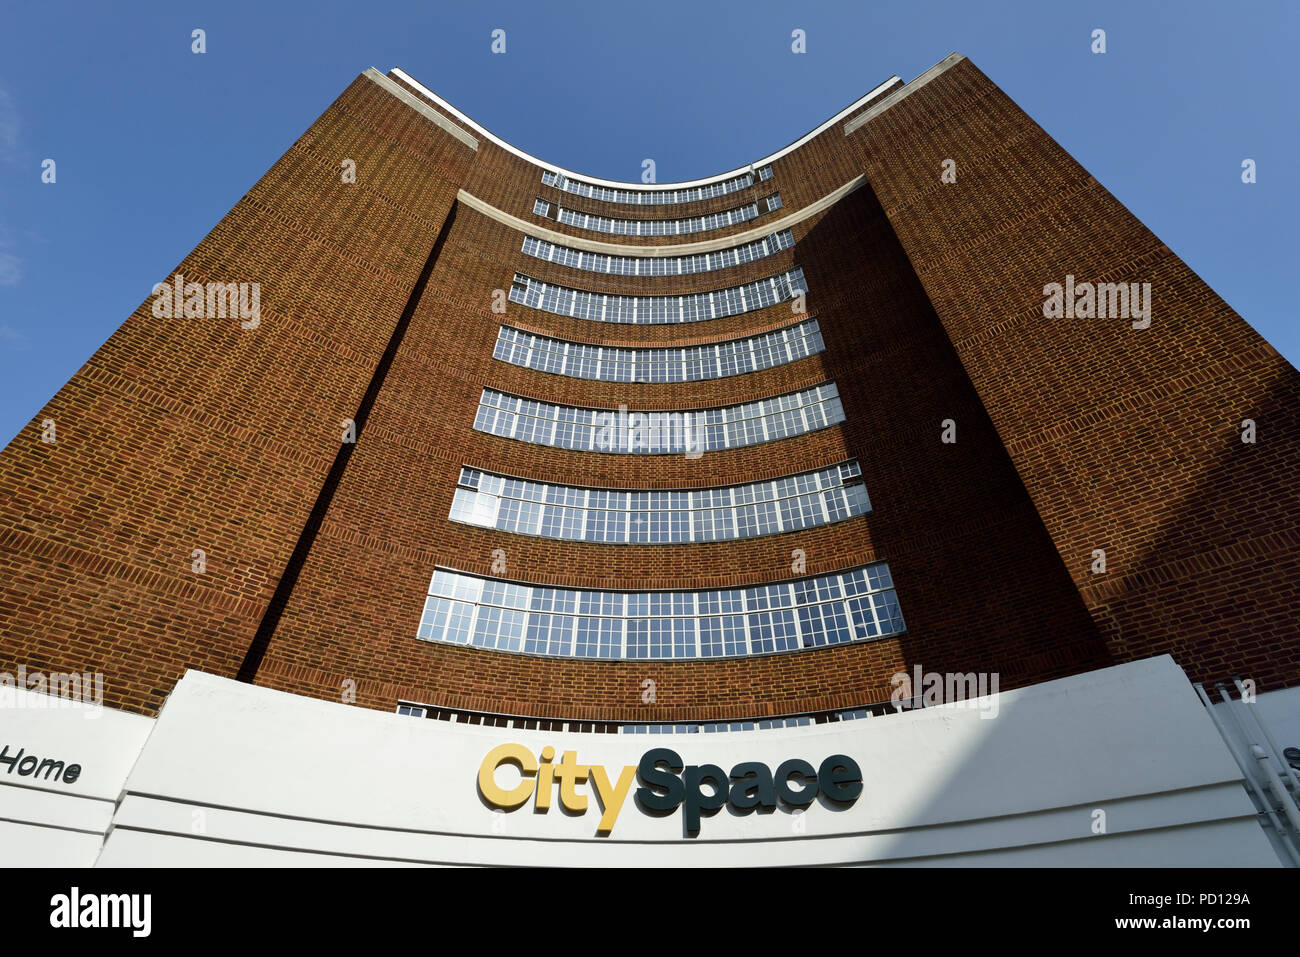 Art Deco facade, CitySpace Bloomsbury, Woburn Place, Russell Square, London, United Kingdom - Stock Image